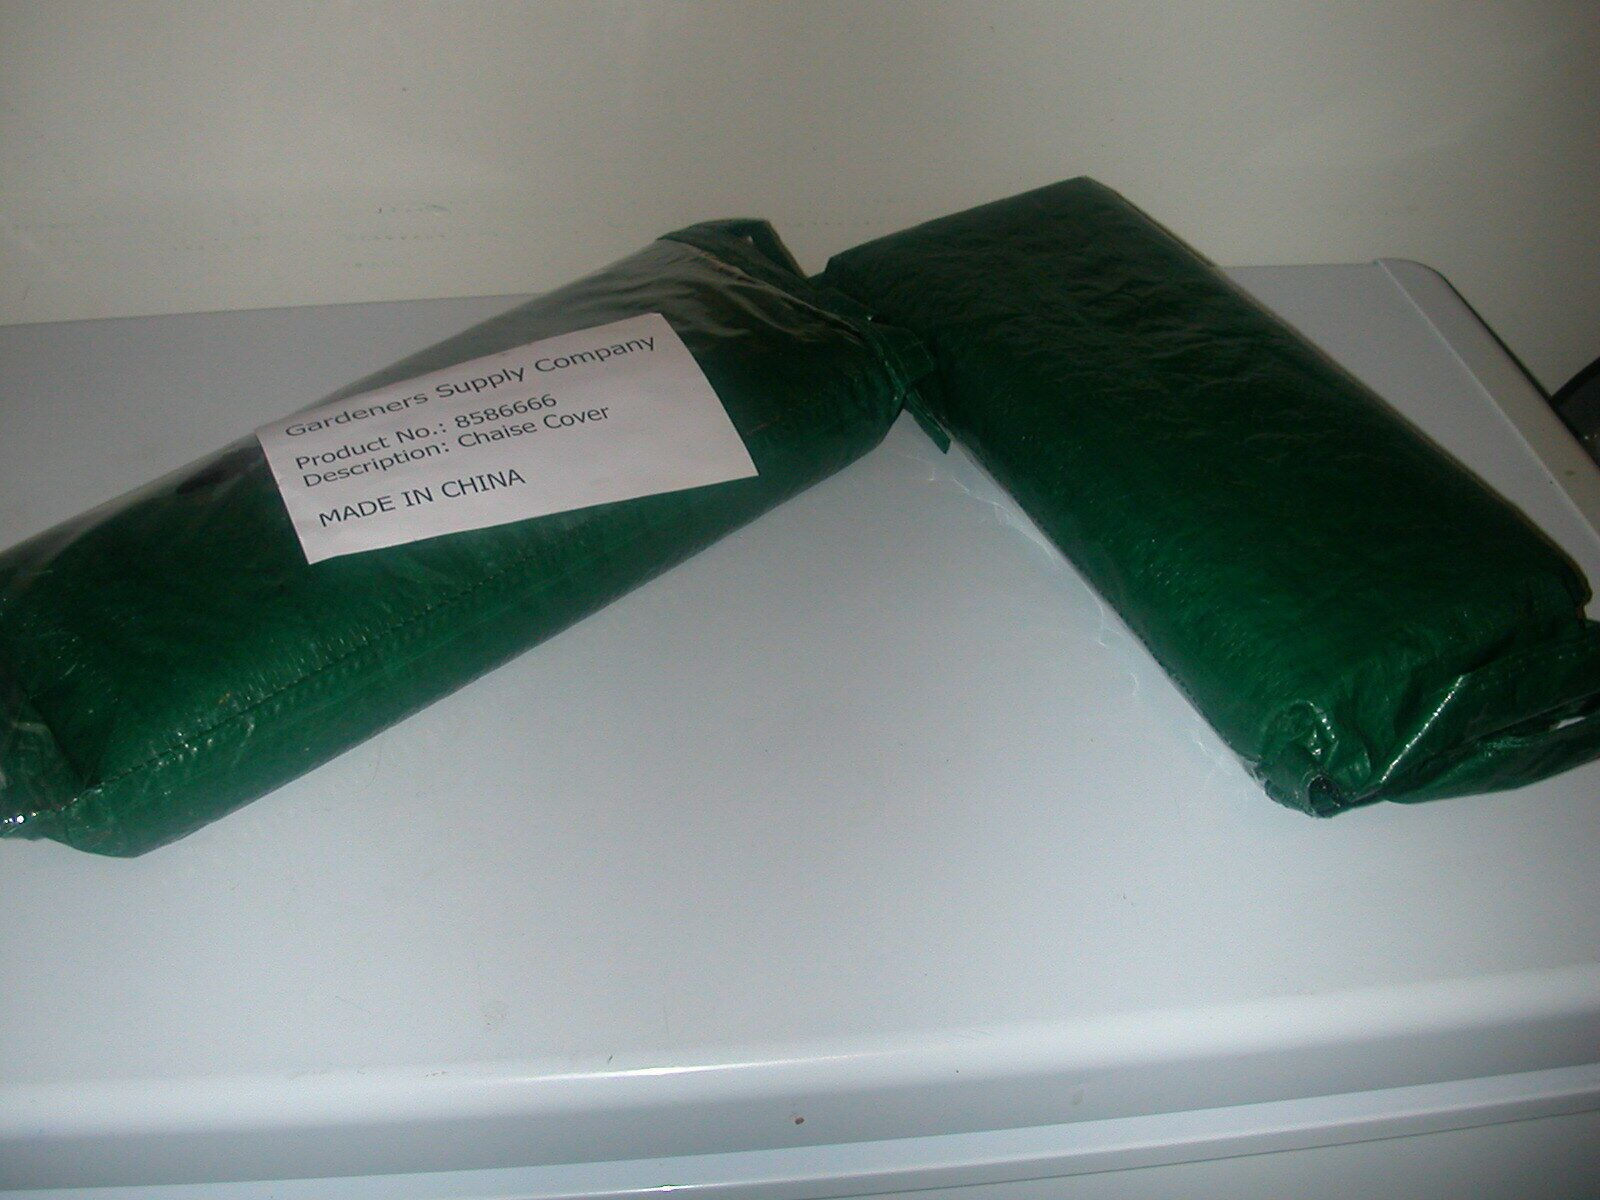 New Two Gardener S Supply Green Chaise Covers Garden Supplies